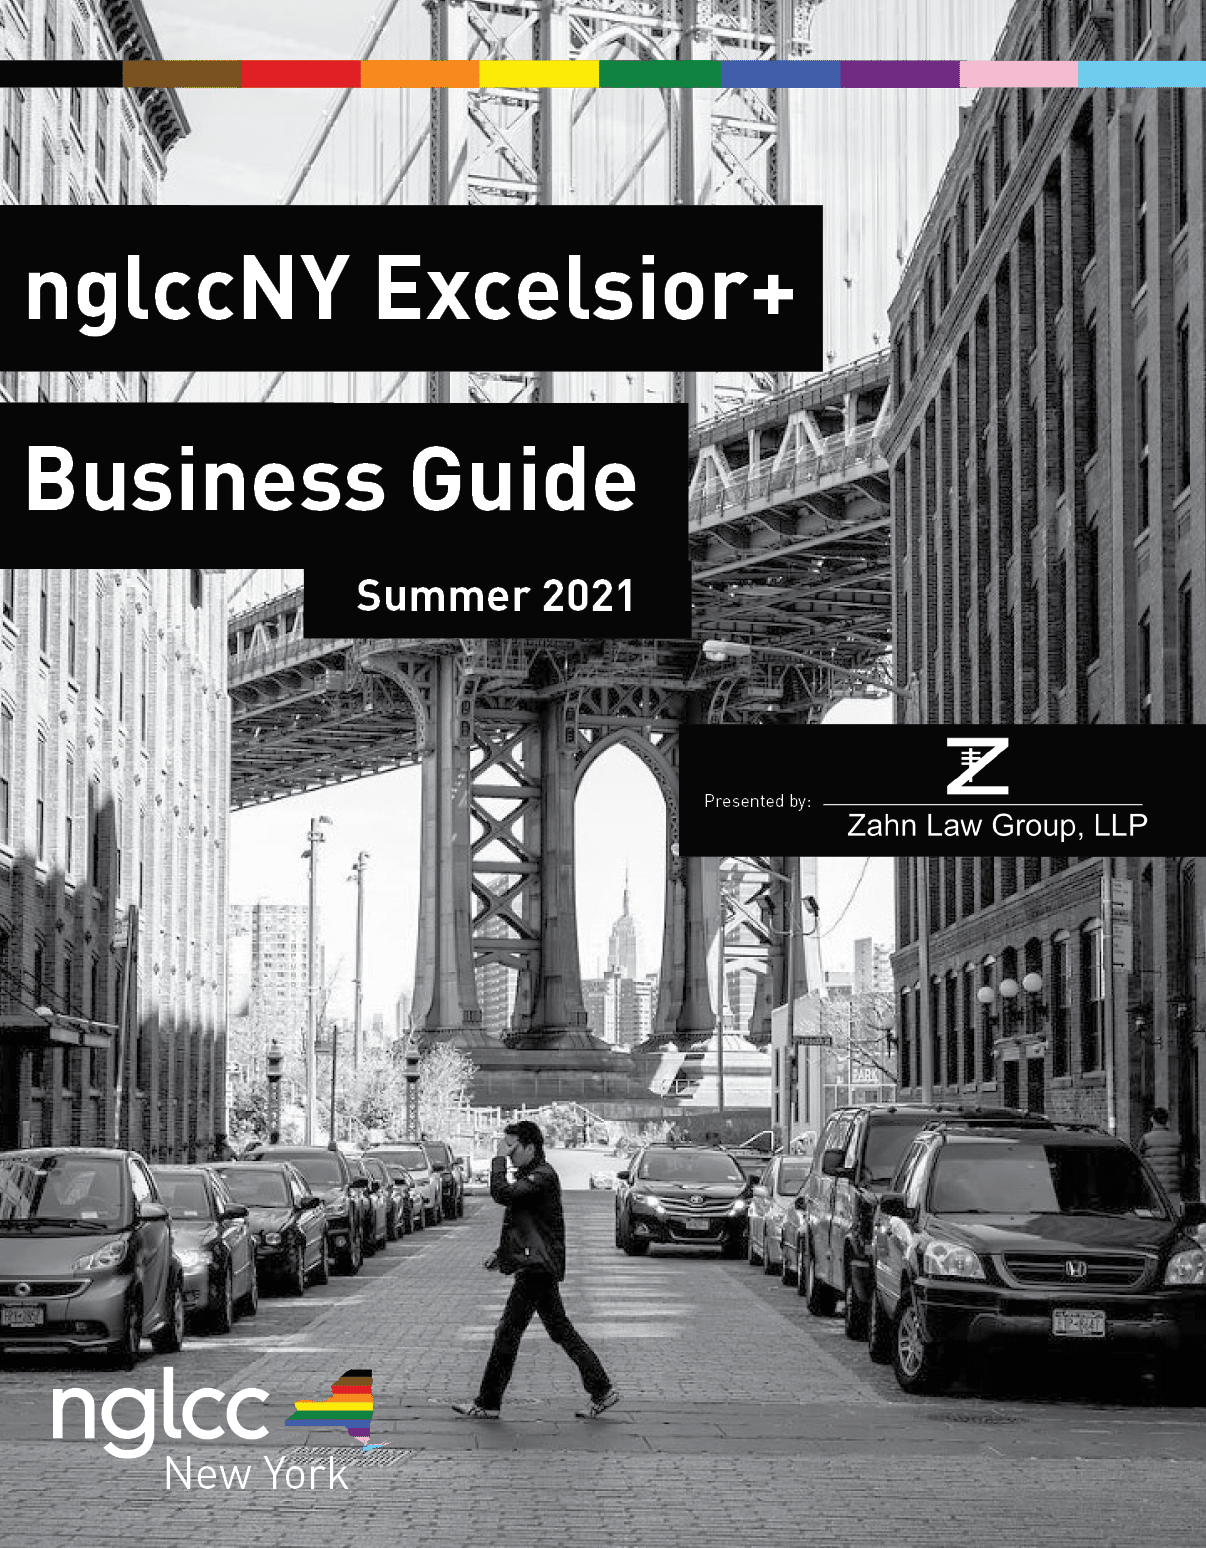 Bari Zahn Features in nglccNY Excelsior+ Business Guide for 2021, Zahn Law Media Portal